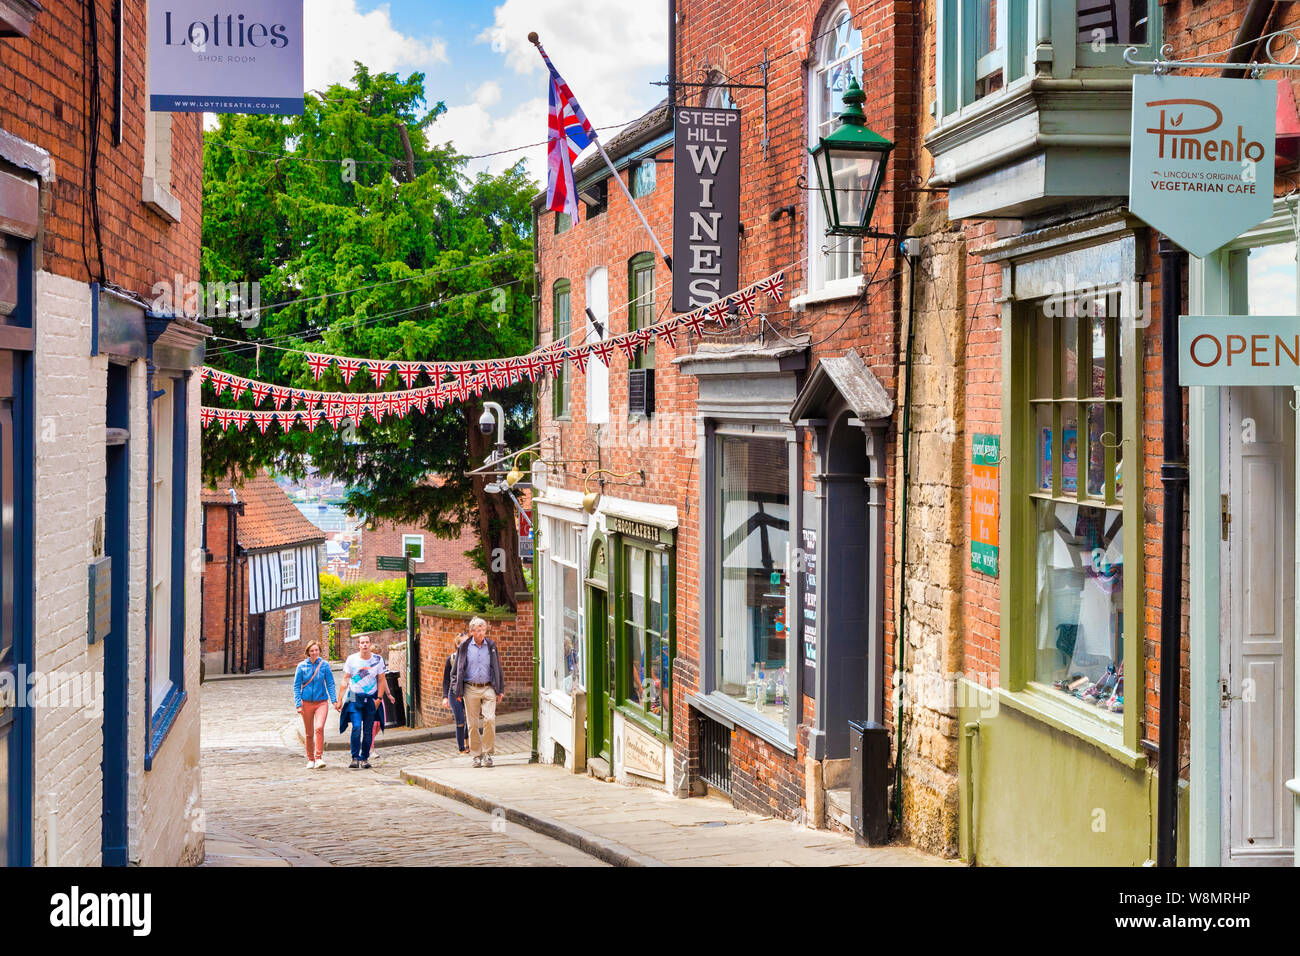 2 July 2019: Lincoln, UK - Steep Hill, the city's famous historic street, with independent shops, cafes and tourists walking up the hill. Stock Photo